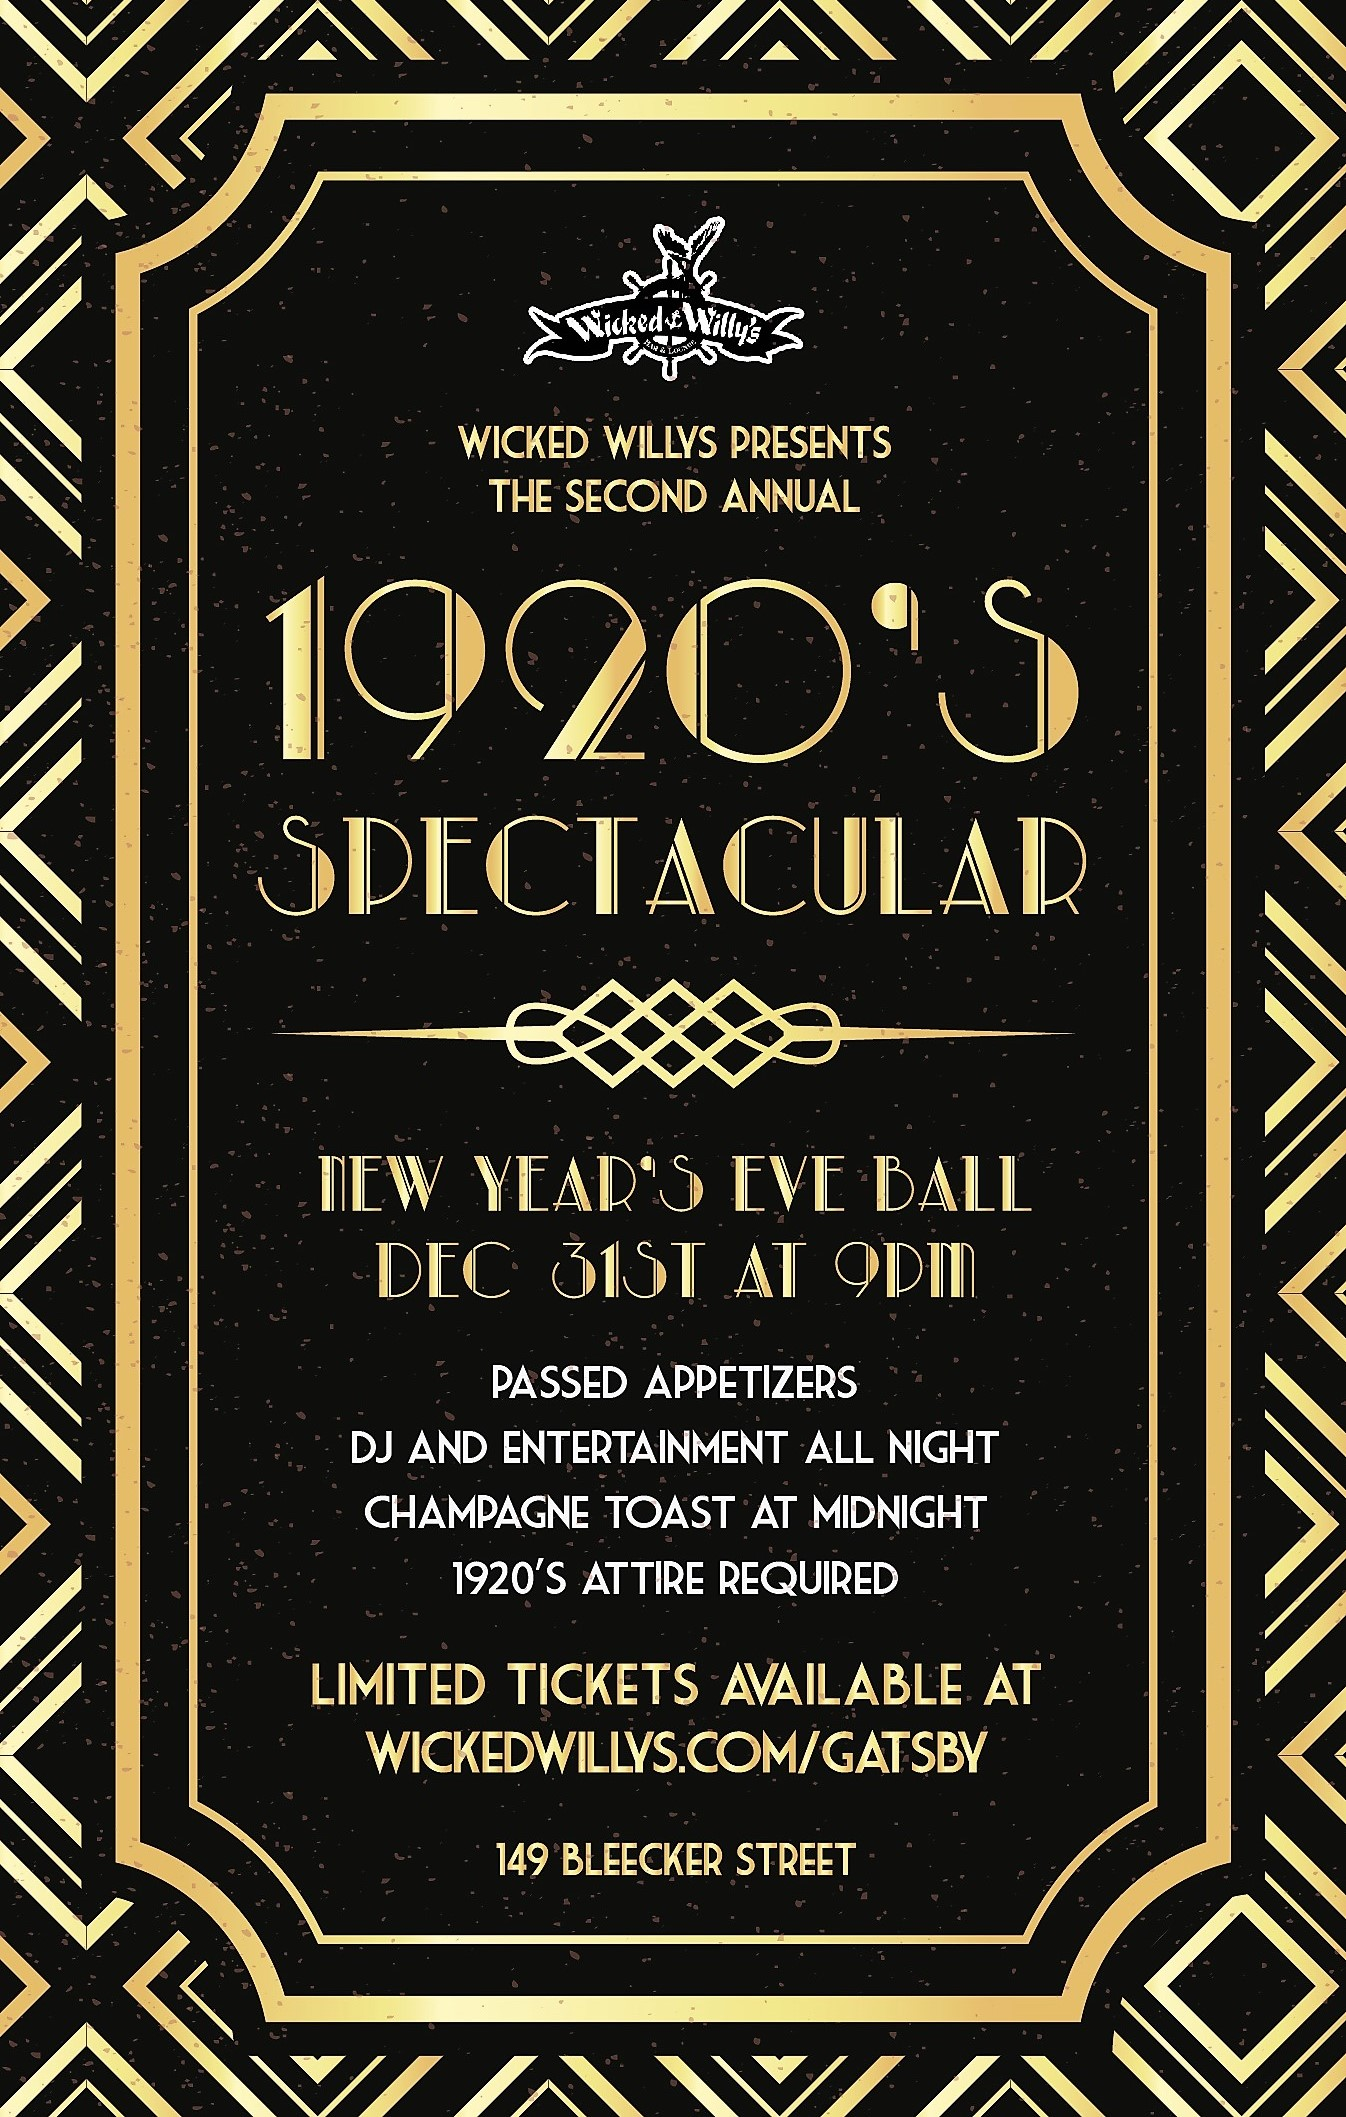 1920's Spectacular New Year's Eve Ball